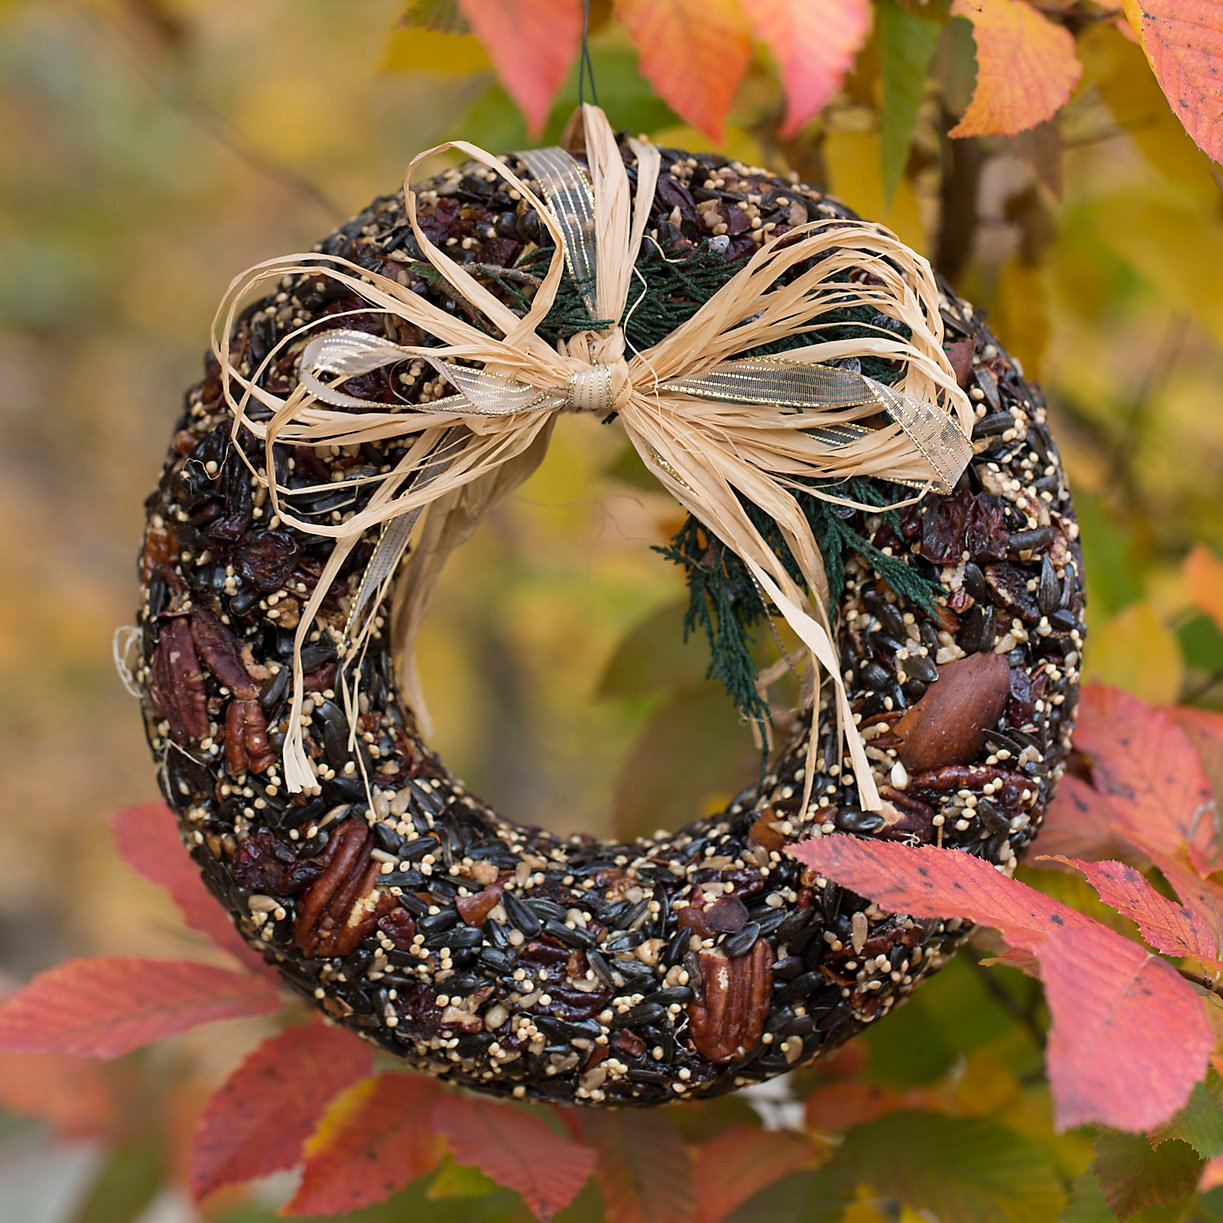 Pecan and seed wreath from Terrain